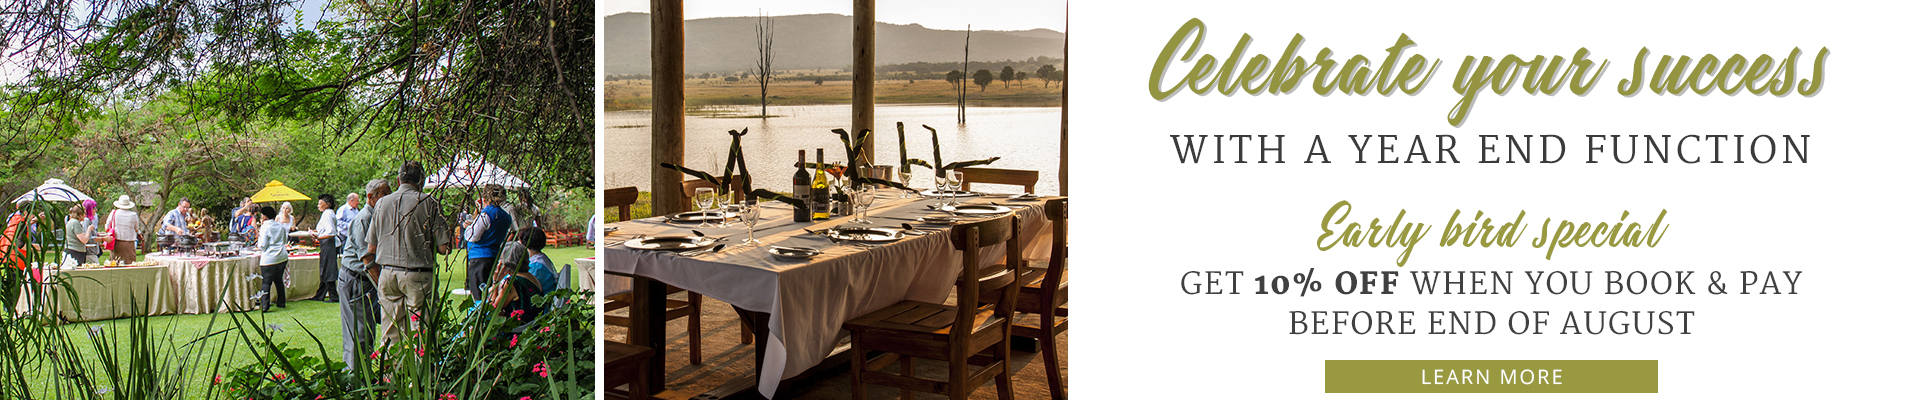 Rustenburg Year End Functions at Kedar Heritage Lodge in the North West, Accommodation in Rustenburg